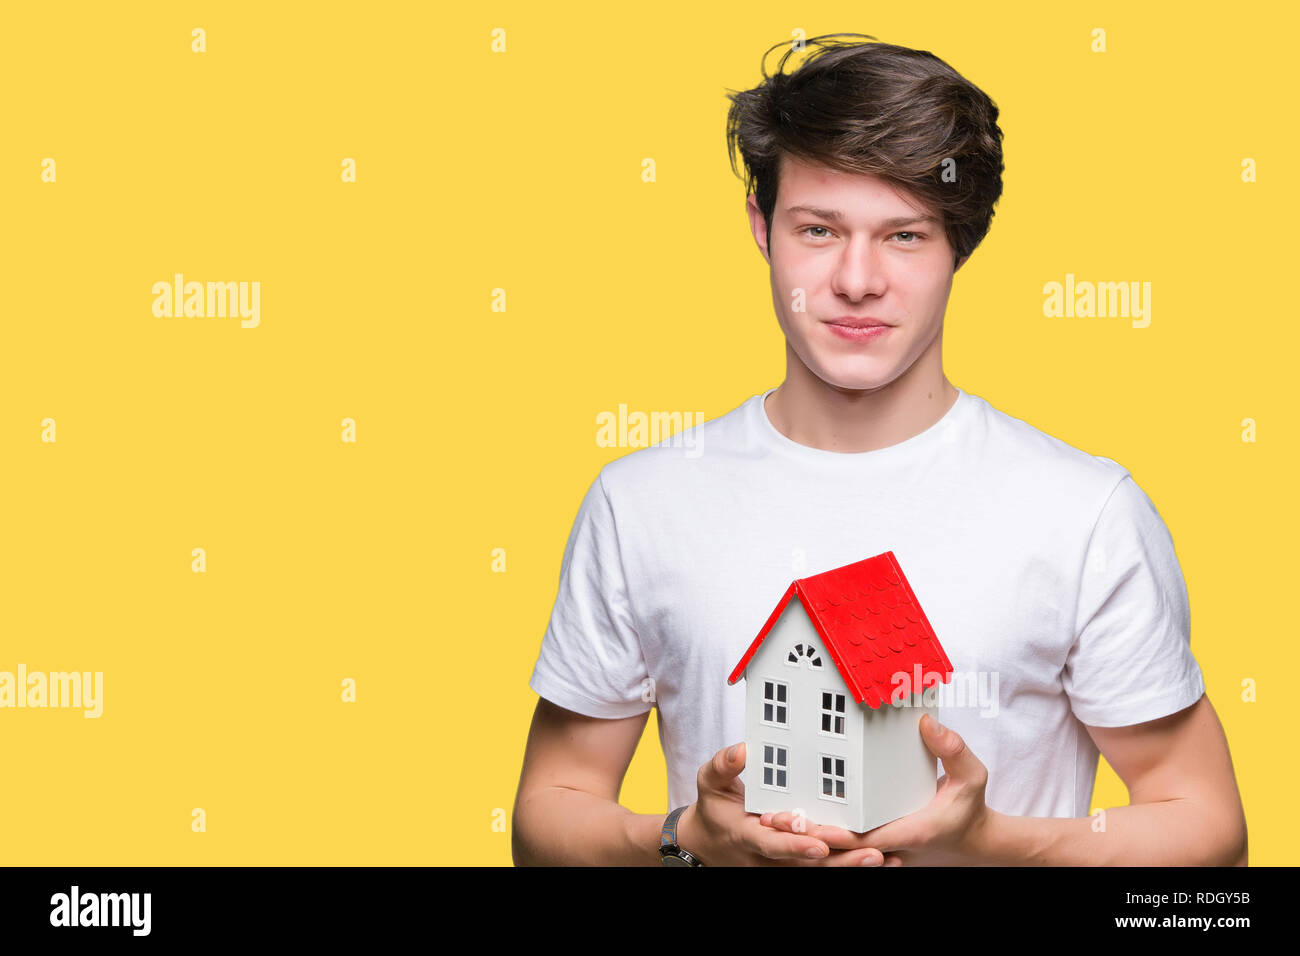 Young man holding house over isolated background with a confident expression on smart face thinking serious - Stock Image